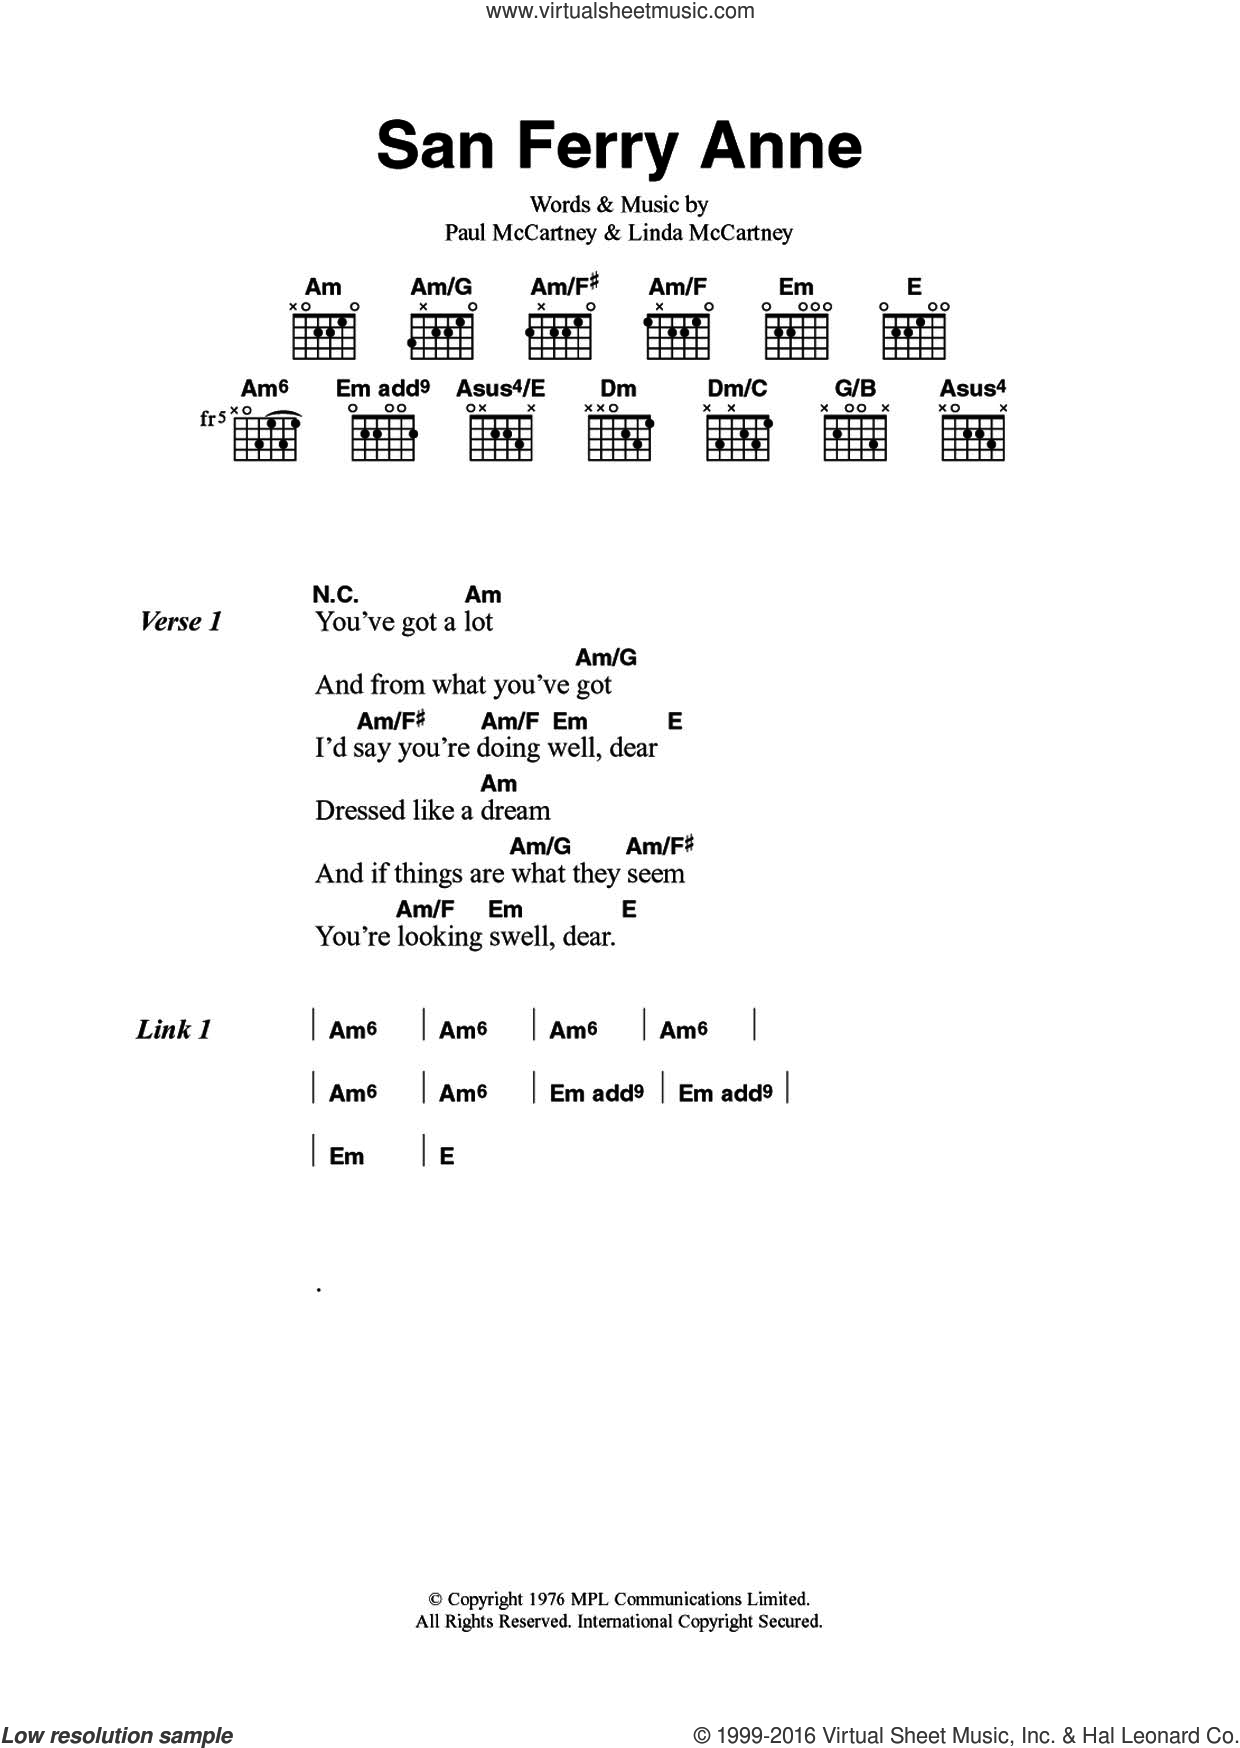 San Ferry Anne sheet music for guitar (chords) by Paul McCartney, Wings and Linda McCartney. Score Image Preview.